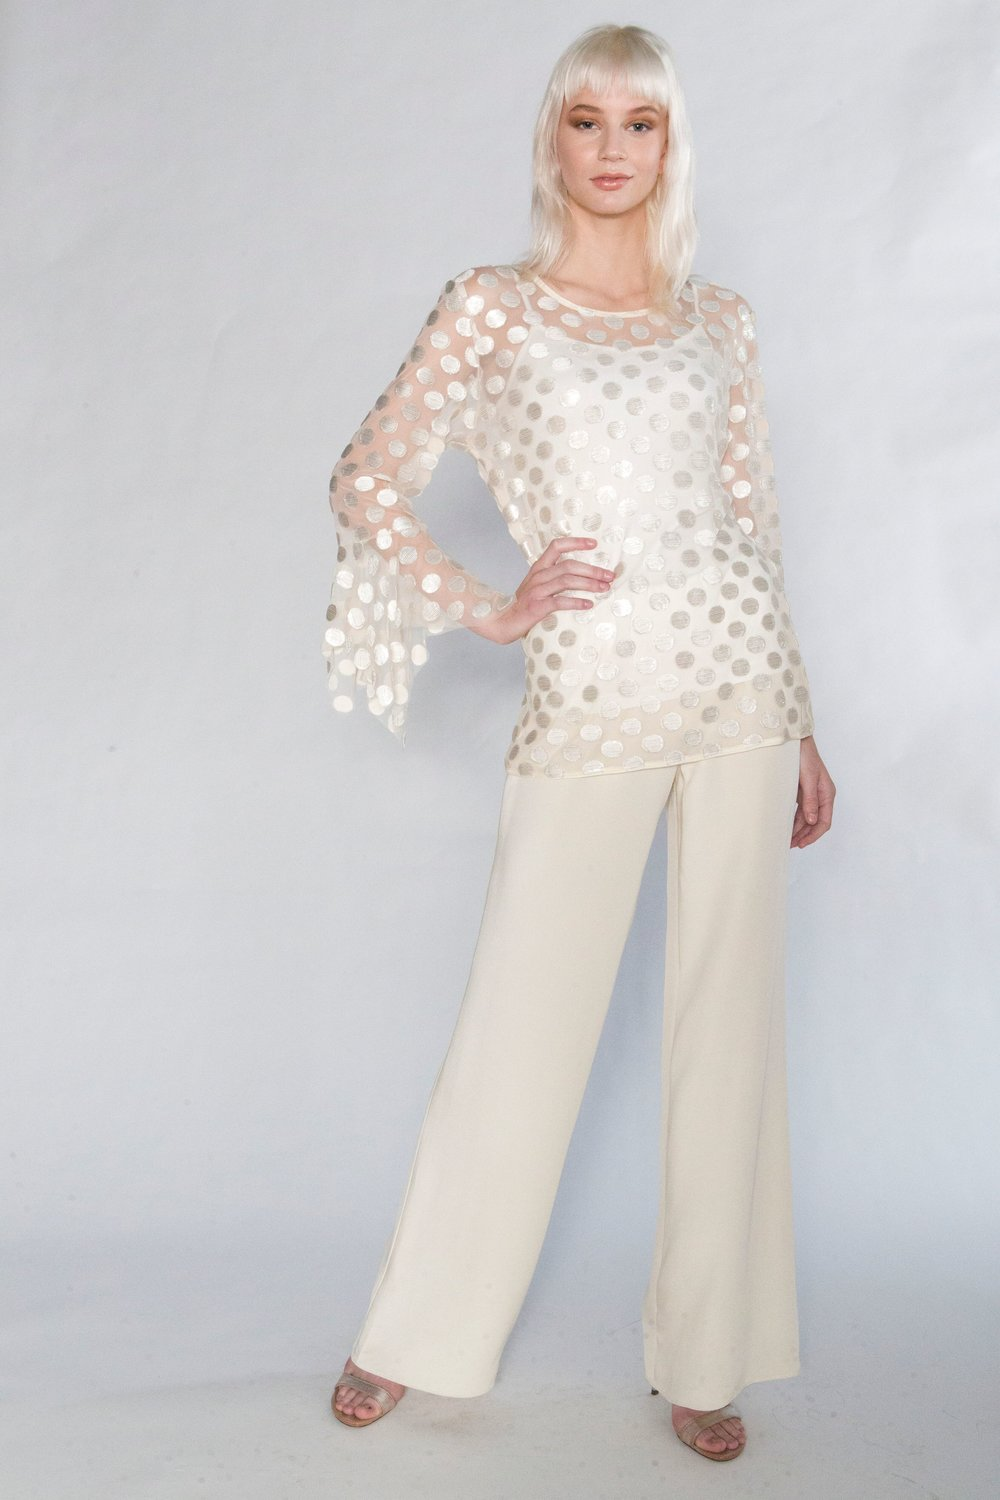 Dotted Hanky Blouse and Piped Silk Pant